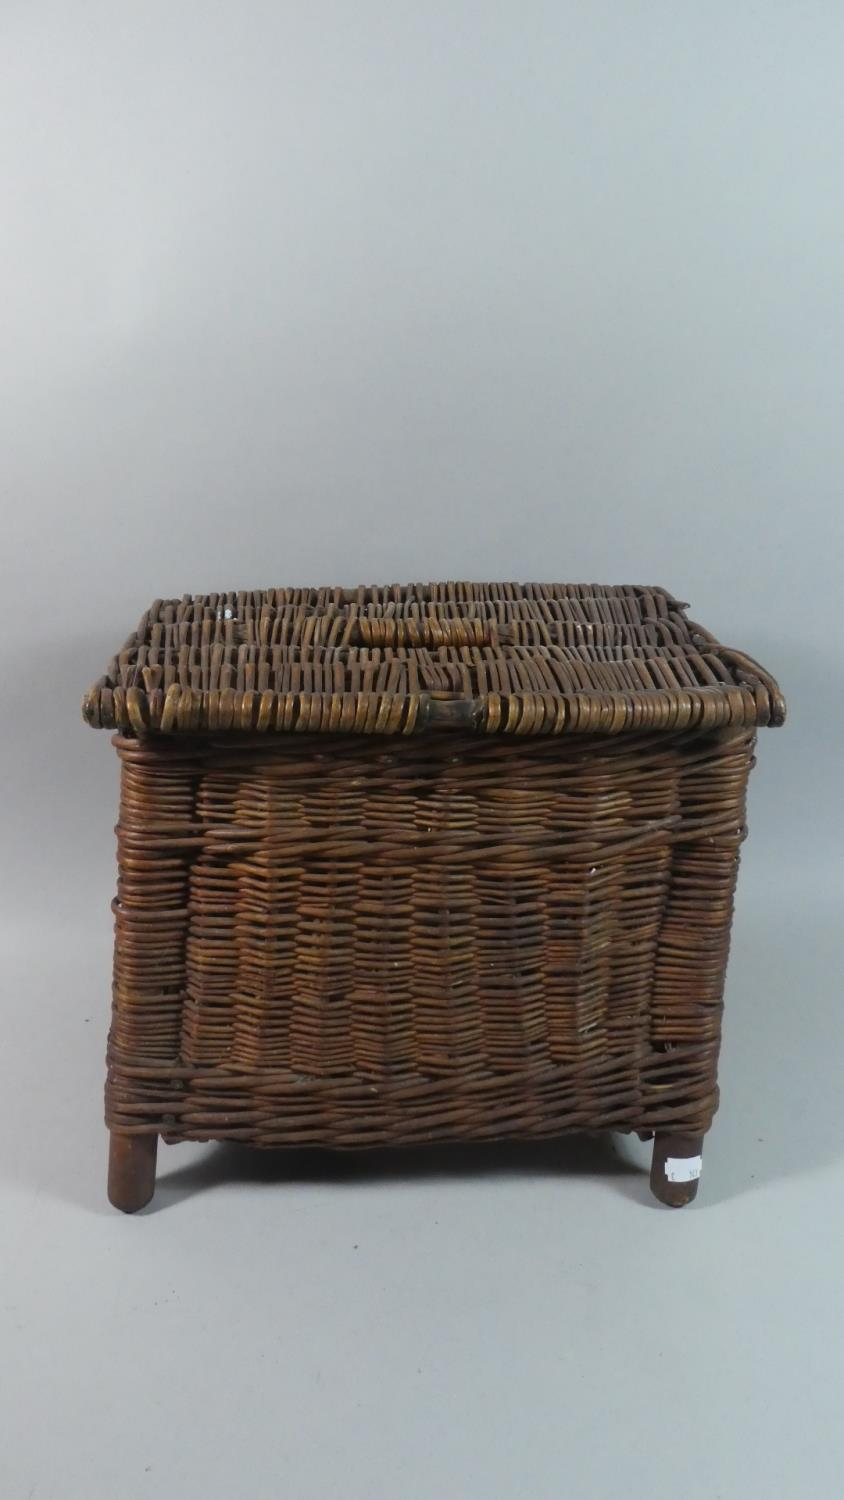 Lot 409 - A Vintage Wicker Fishing Creel, 38cm Long